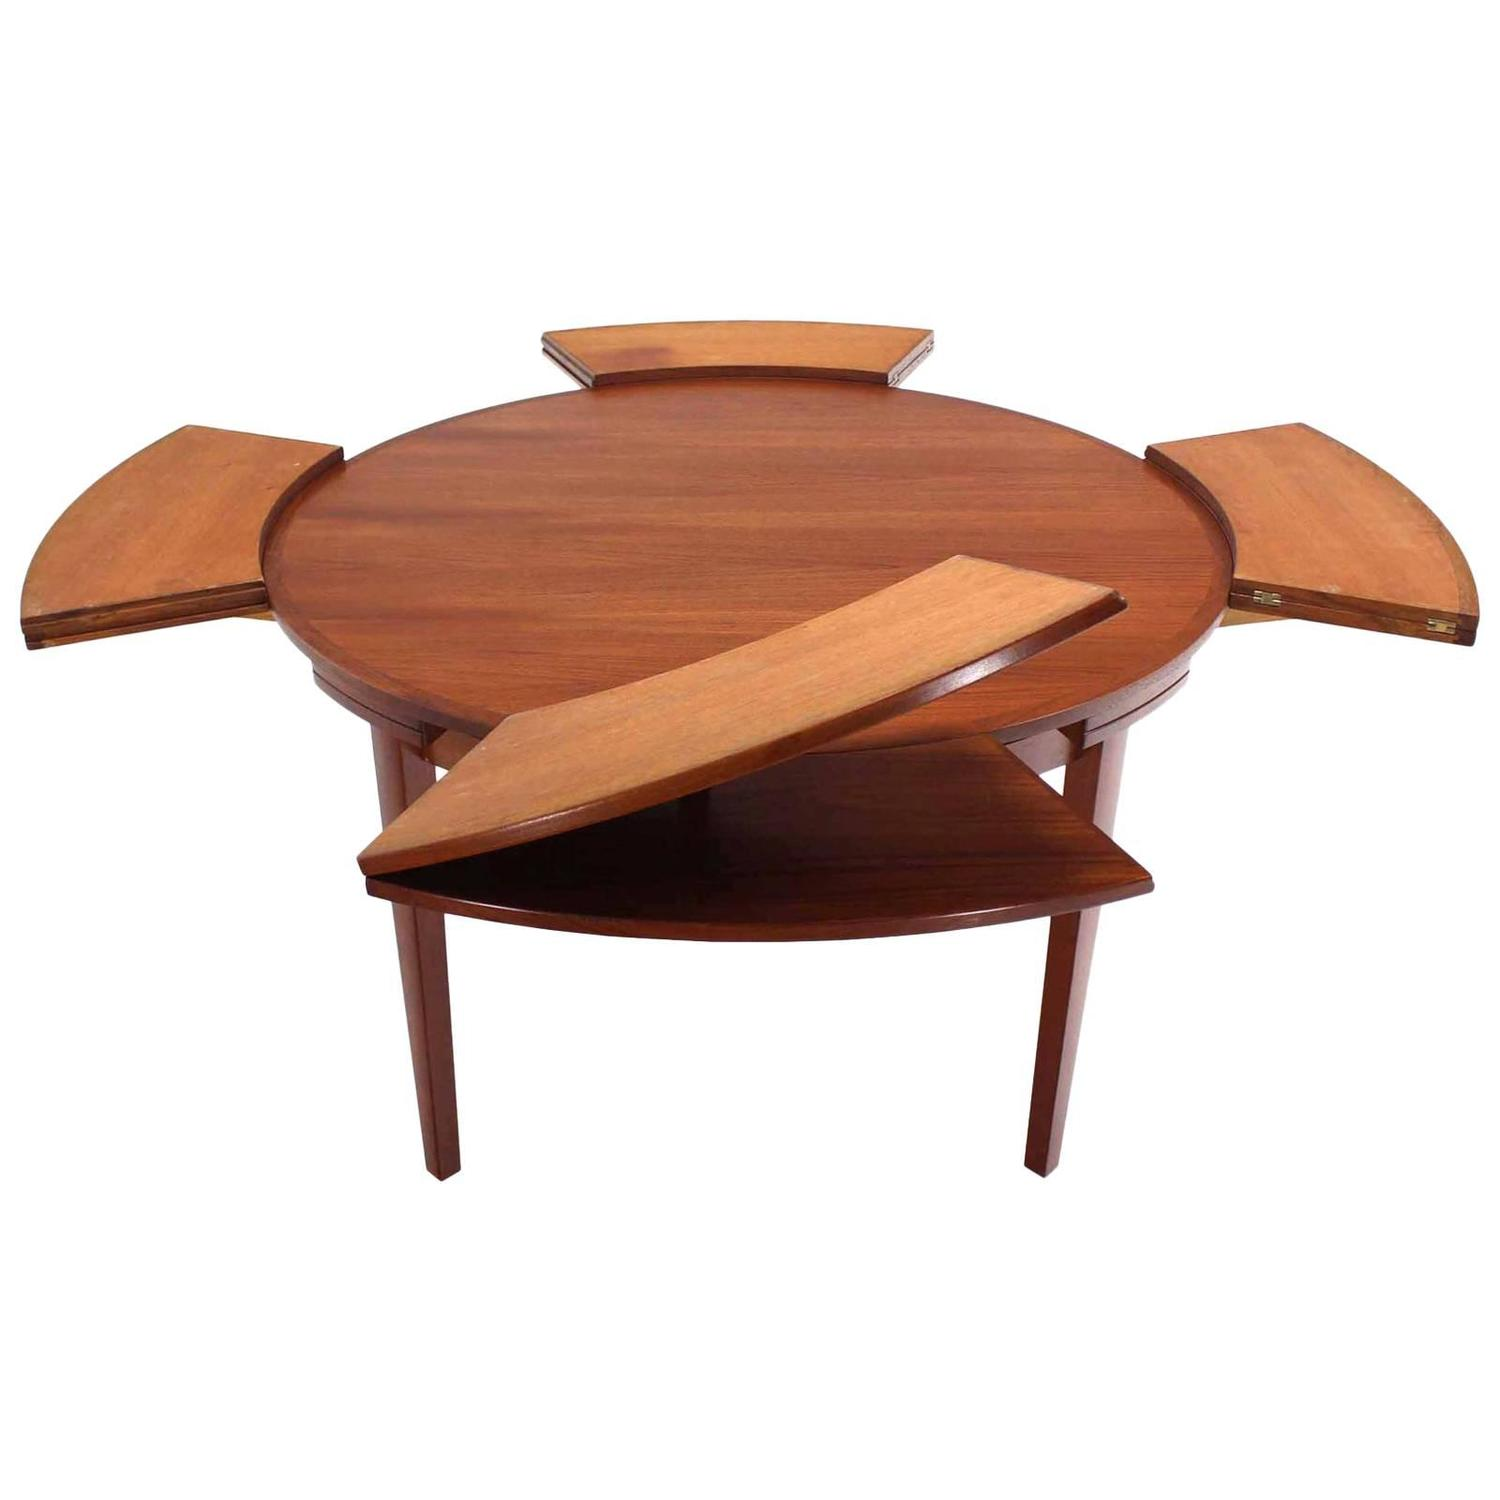 Round dining table modern on mid century modern furniture nj